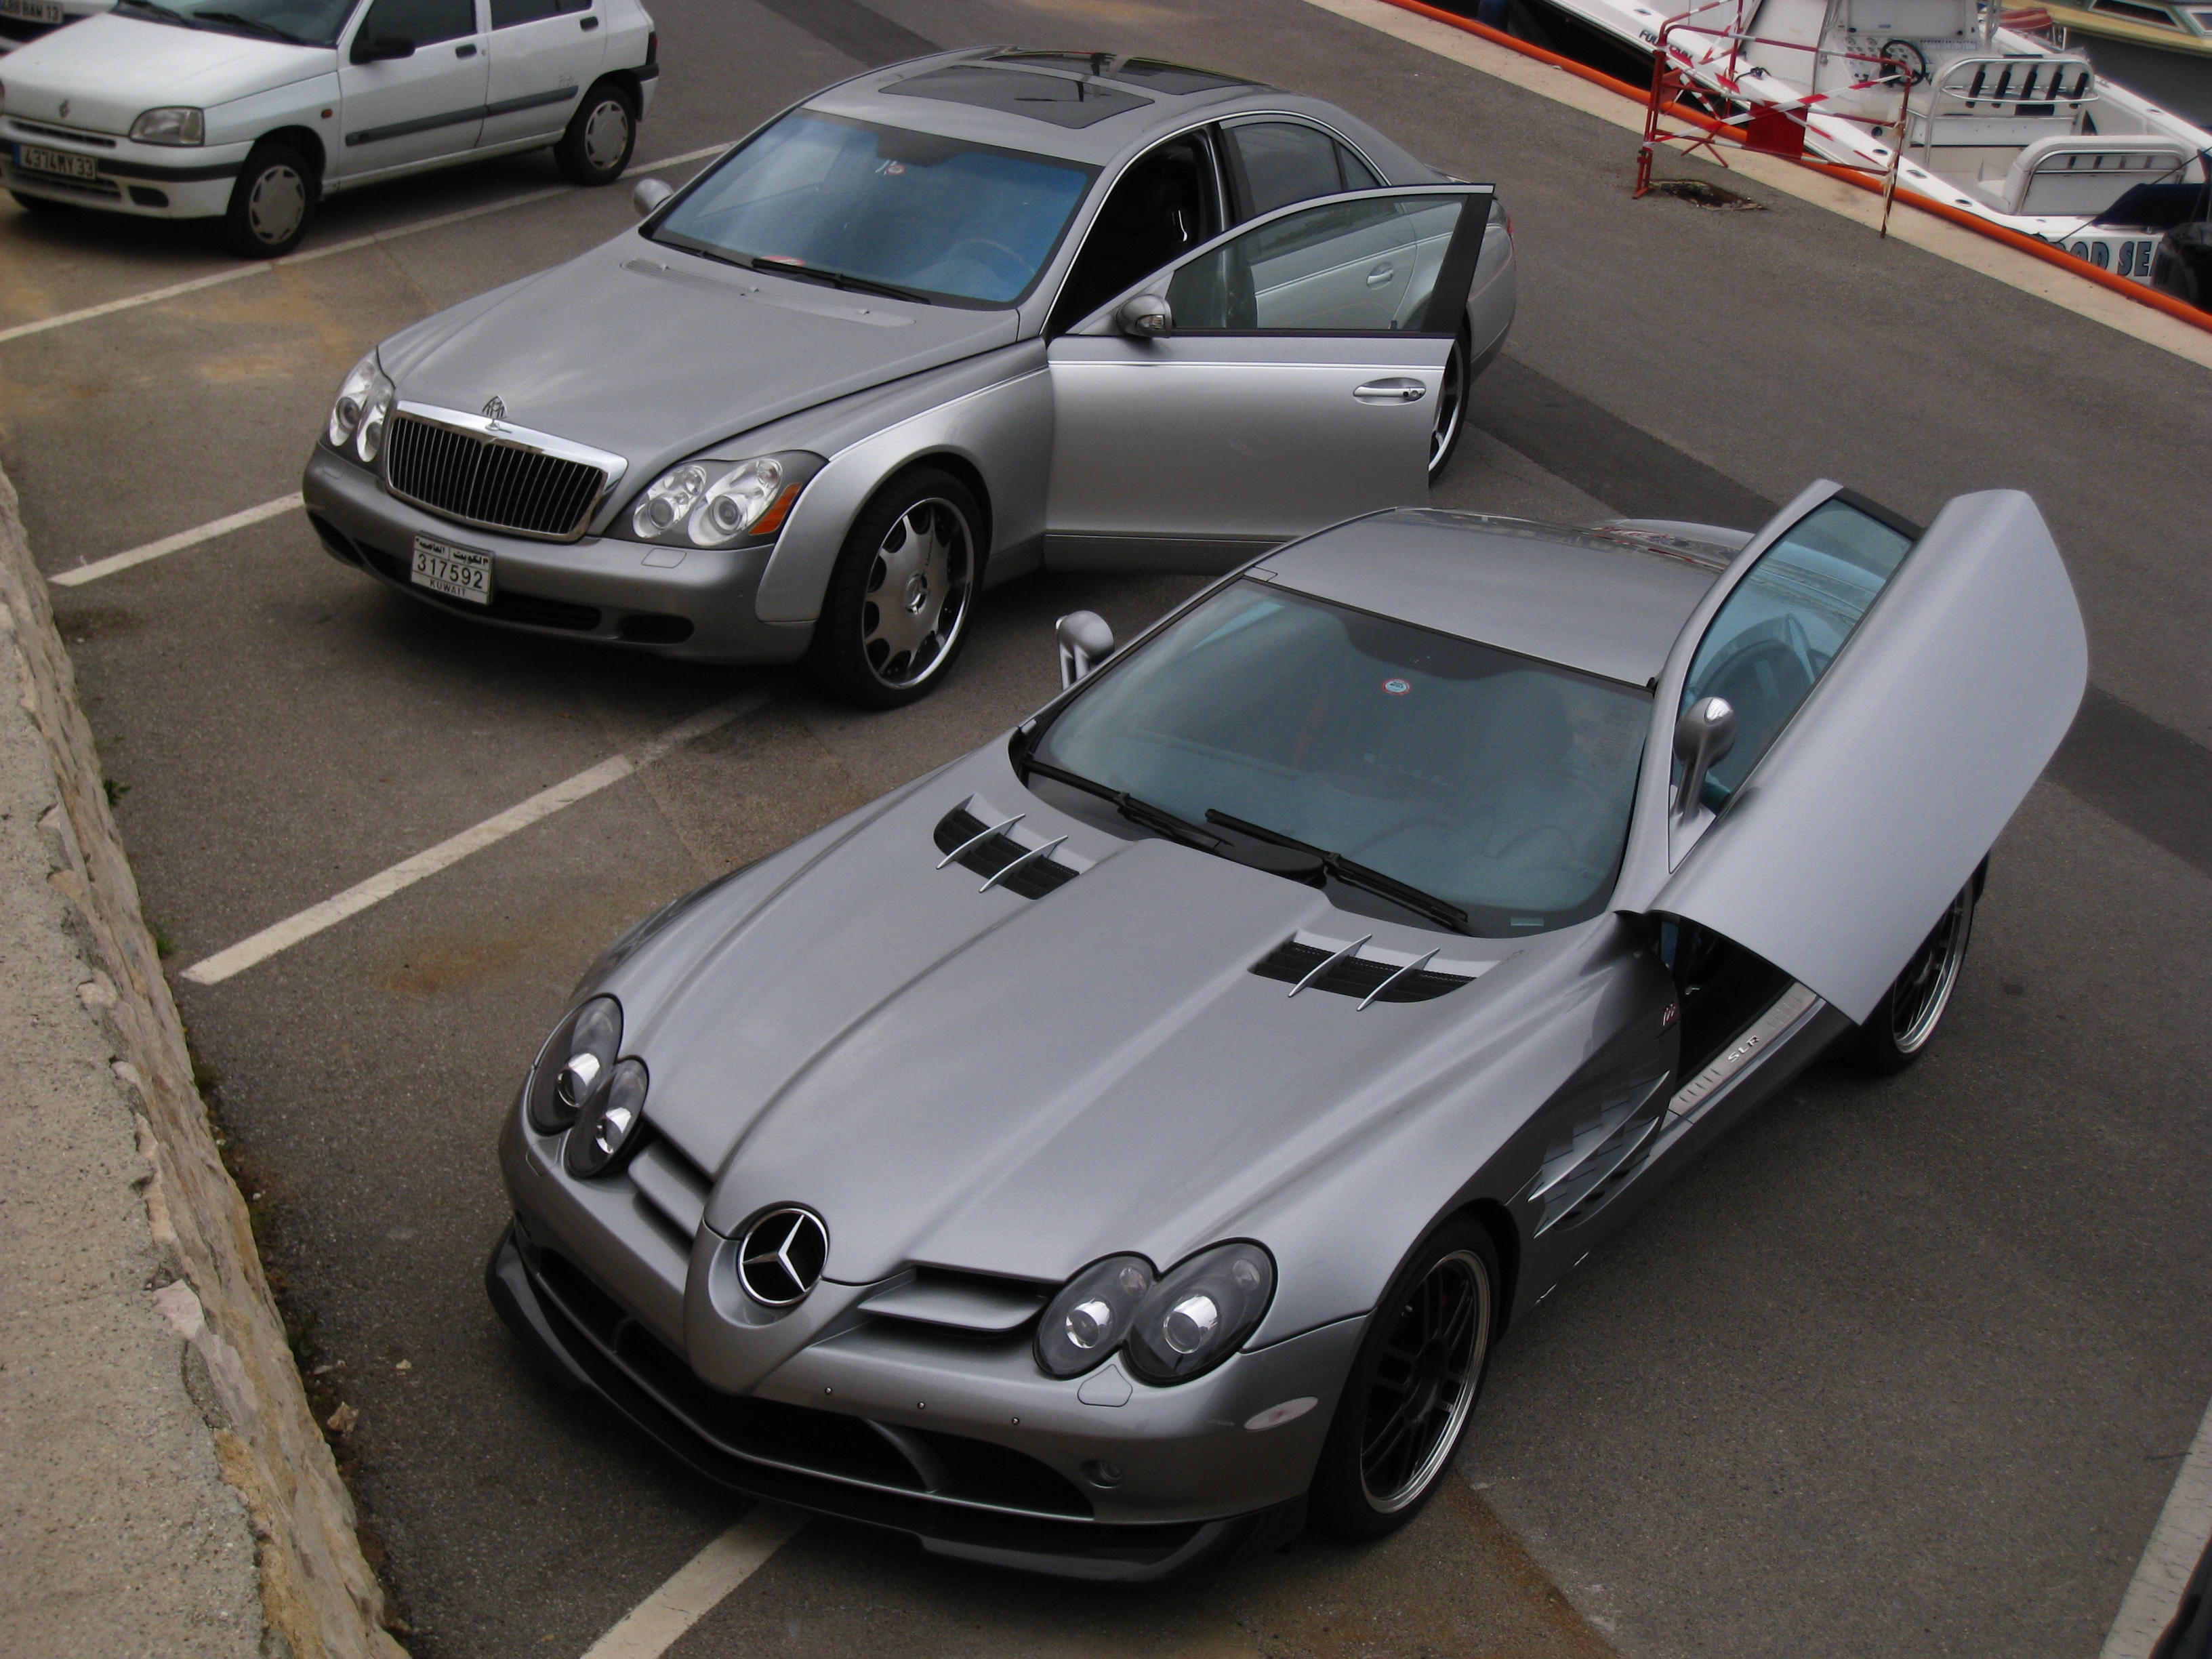 Mercedes-Benz SLR McLaren 722 Edition and Maybach from Kuwait ...